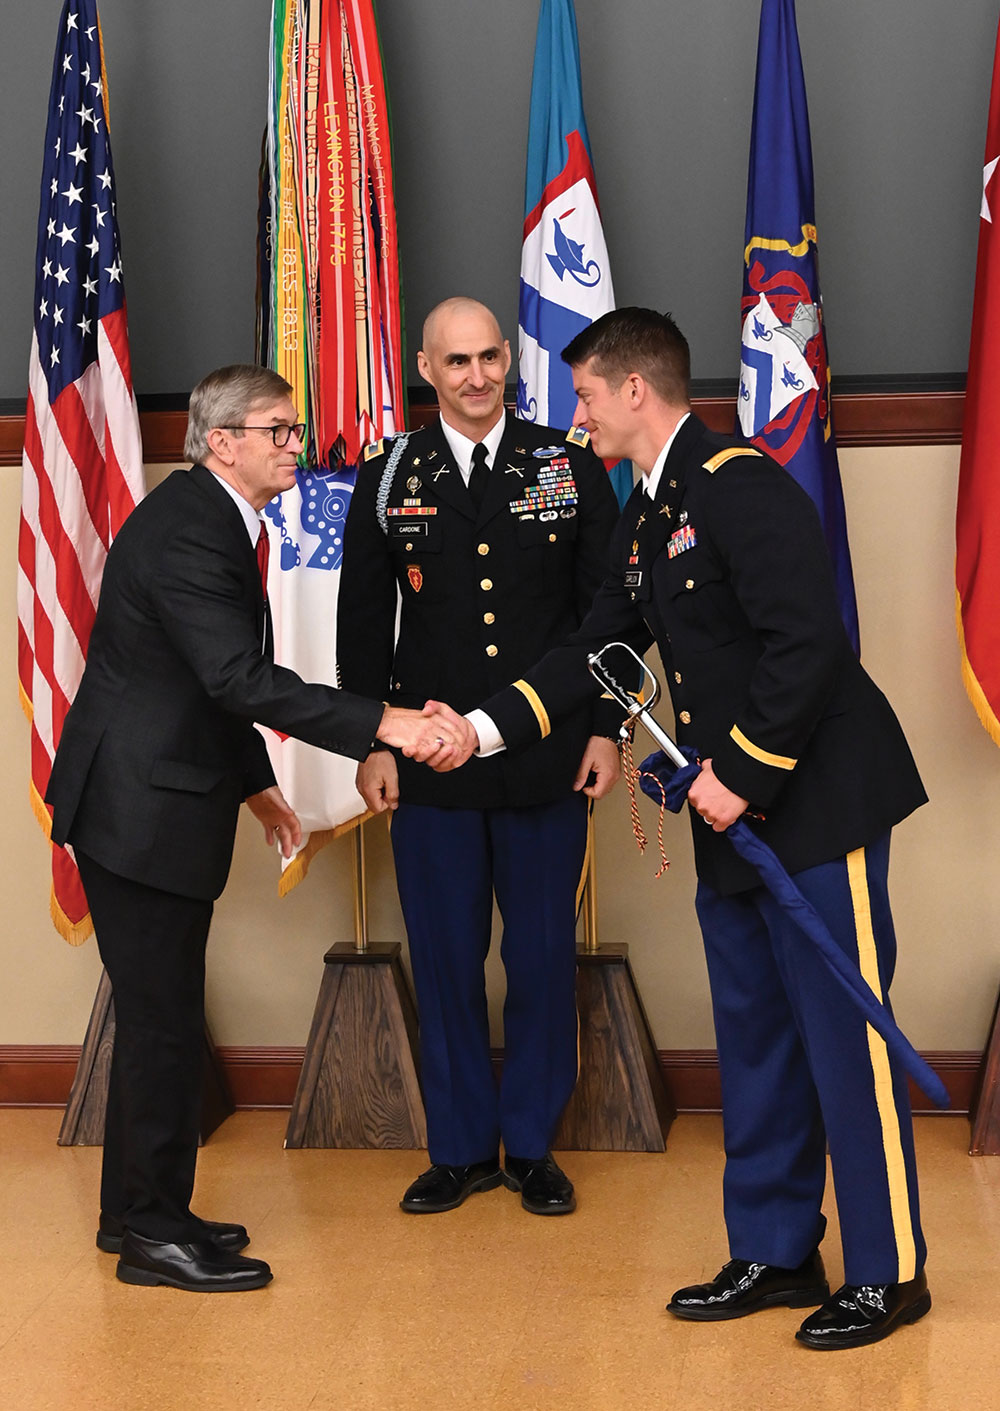 CGSC Foundation Chairman Mike Hockley and Department of Army Tactics Director Col. Chris Cardone present the General George S. Patton Jr. Master Tactician Award to Maj. Christopher Garlick.